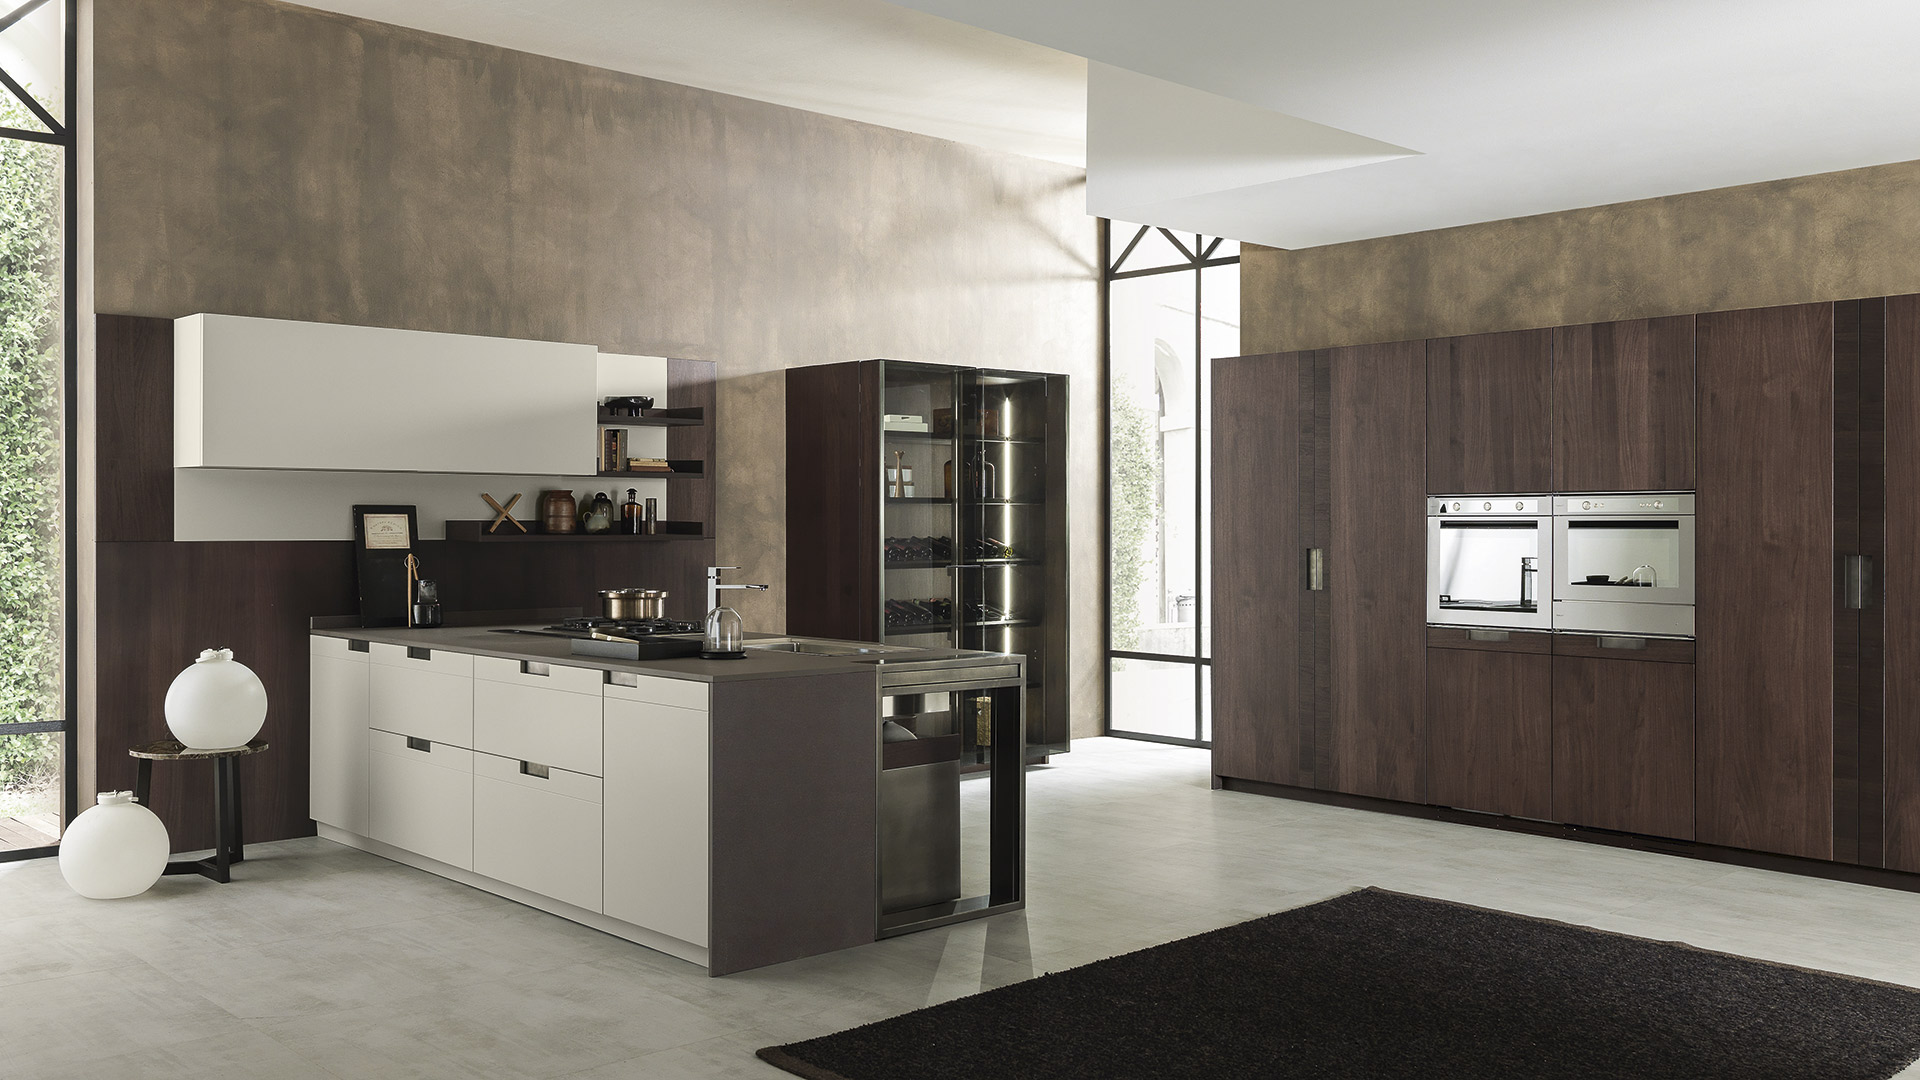 Kitchens pedini miami